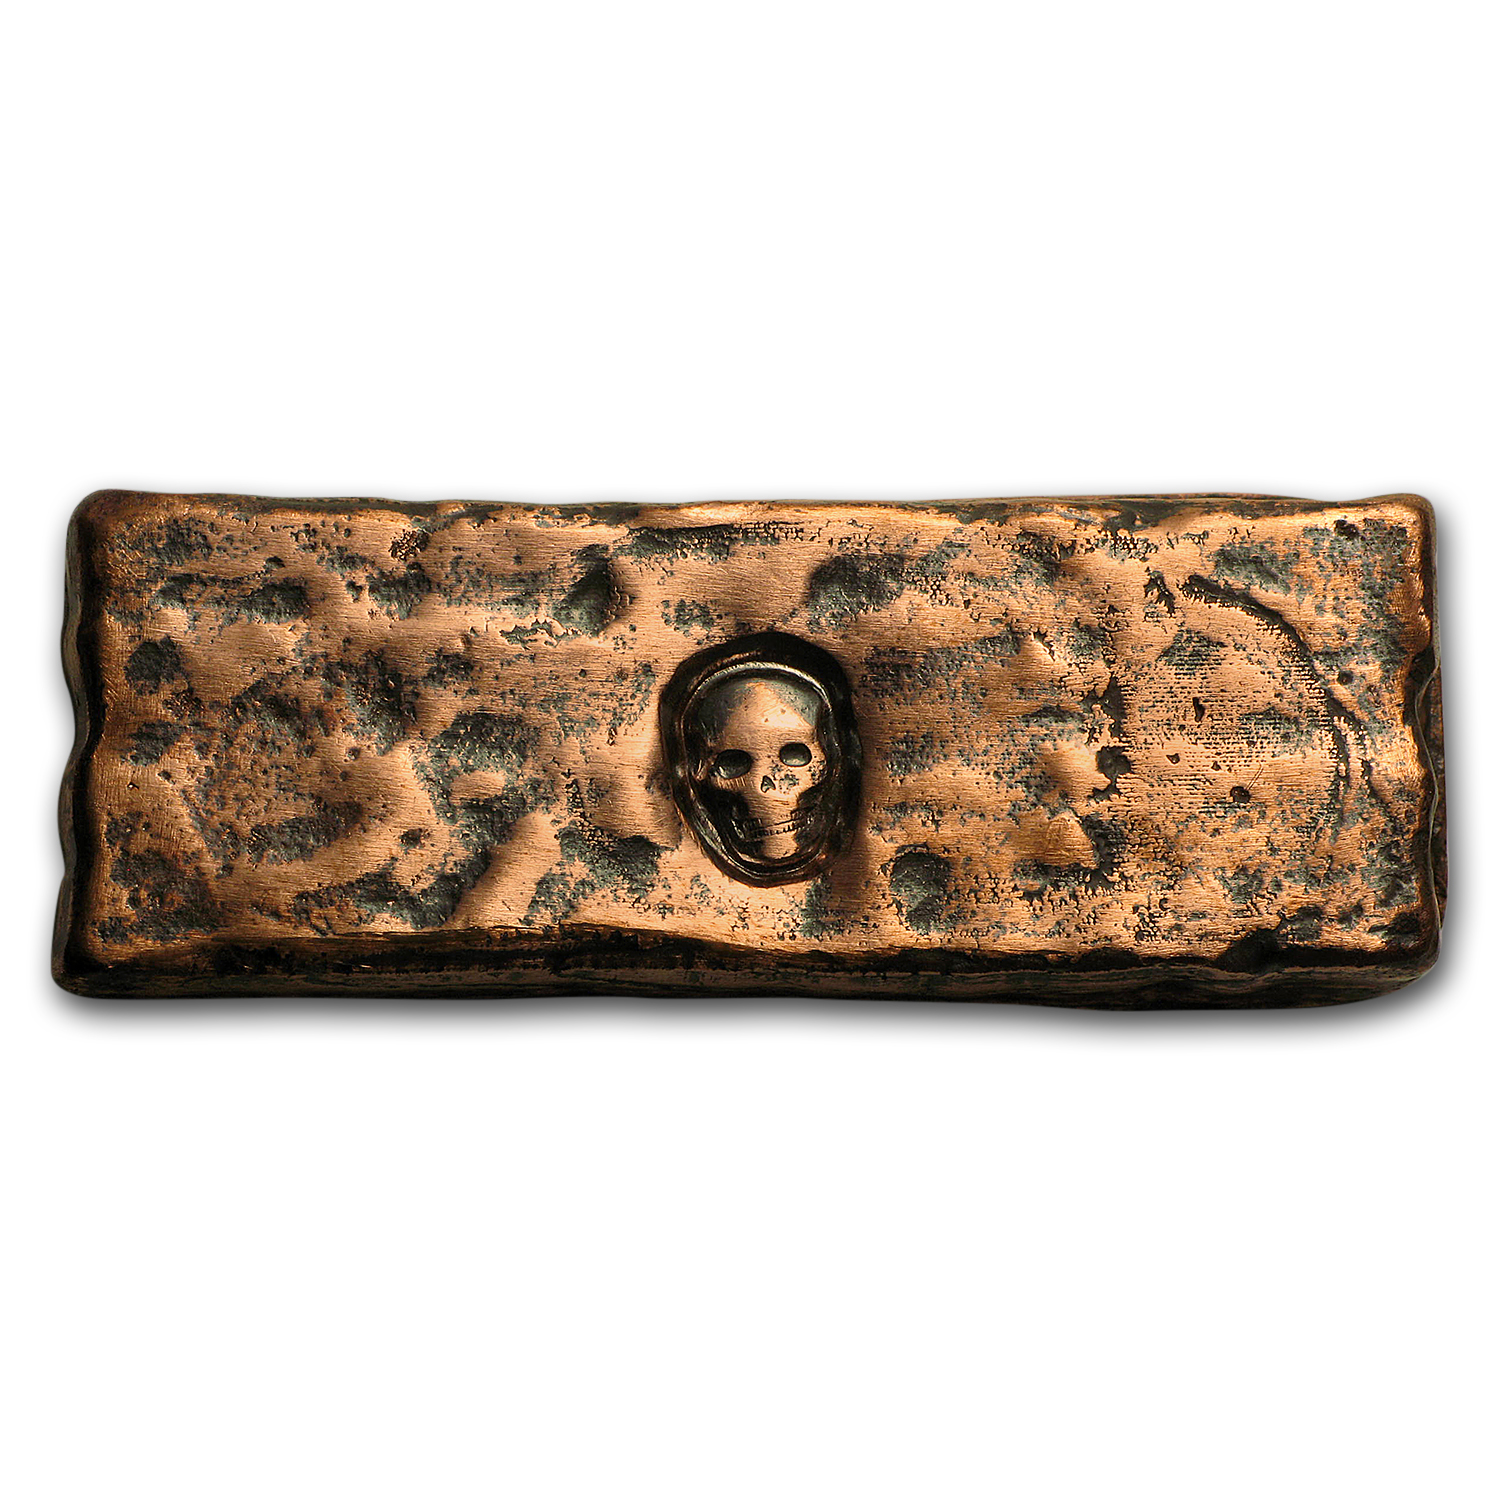 4 oz Copper Rugged Bar - MK Barz & Bullion (Skull Stamped)